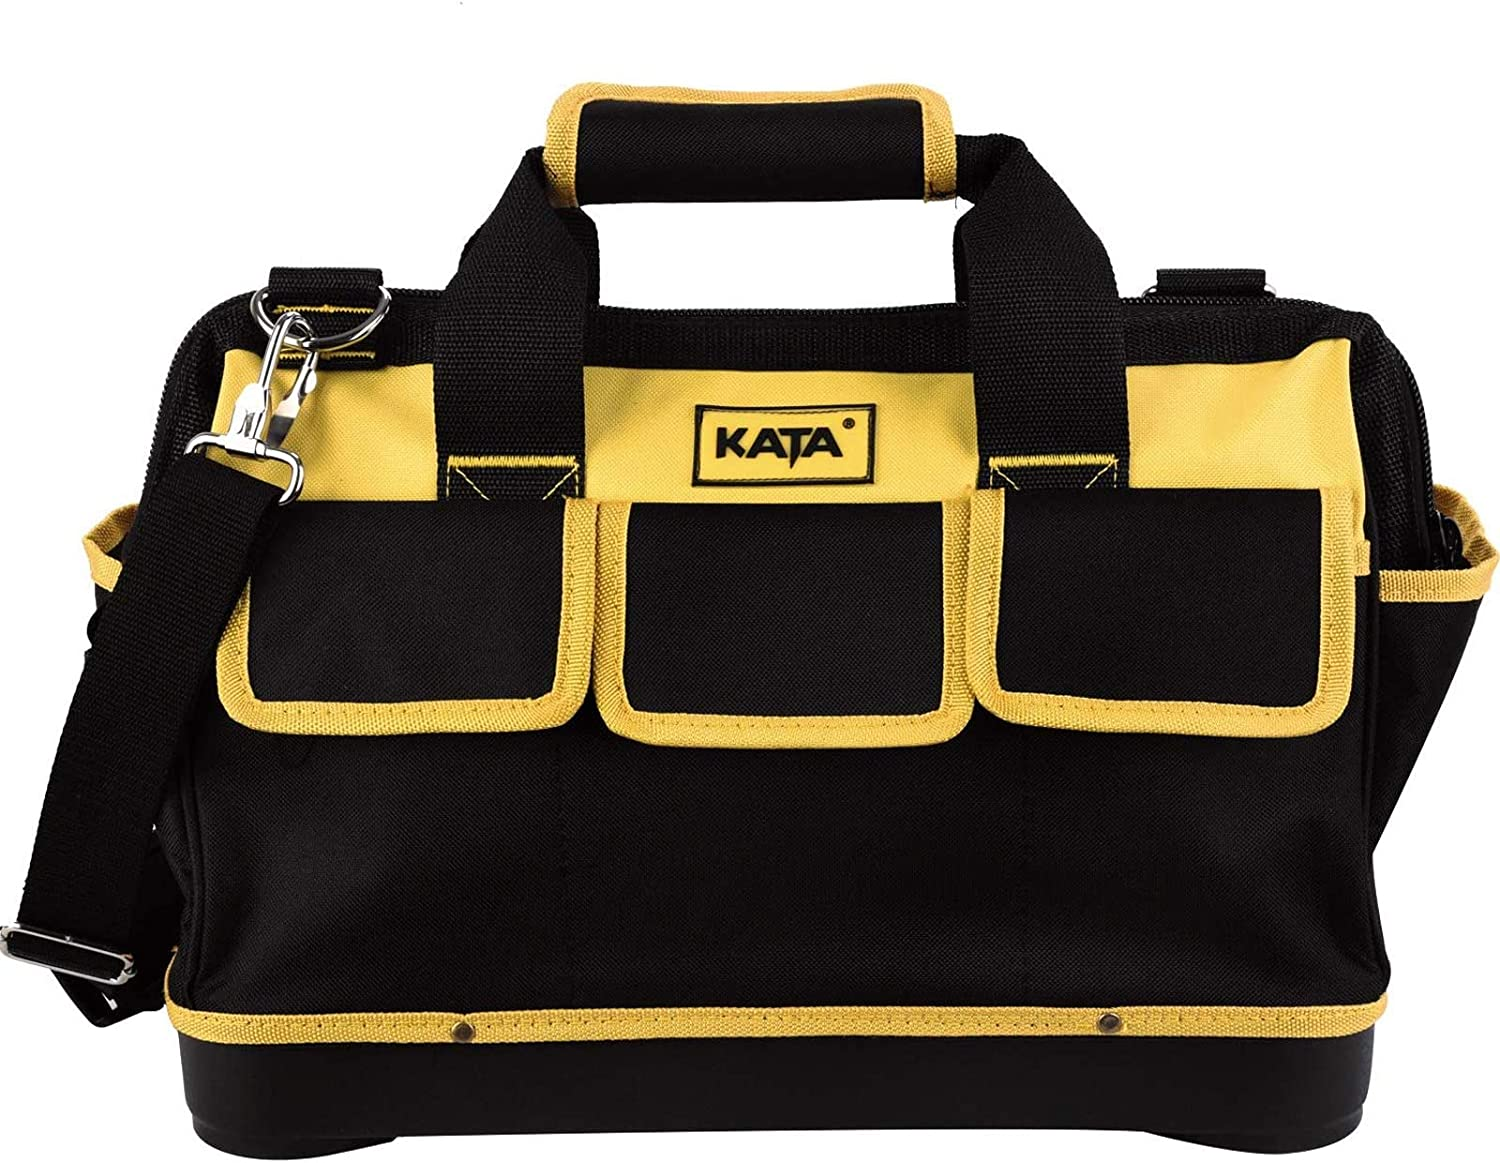 KATA 16 Inch Heavy Duty Tool Bag Mouth Wide San Diego Mall for Tucson Mall with Storag